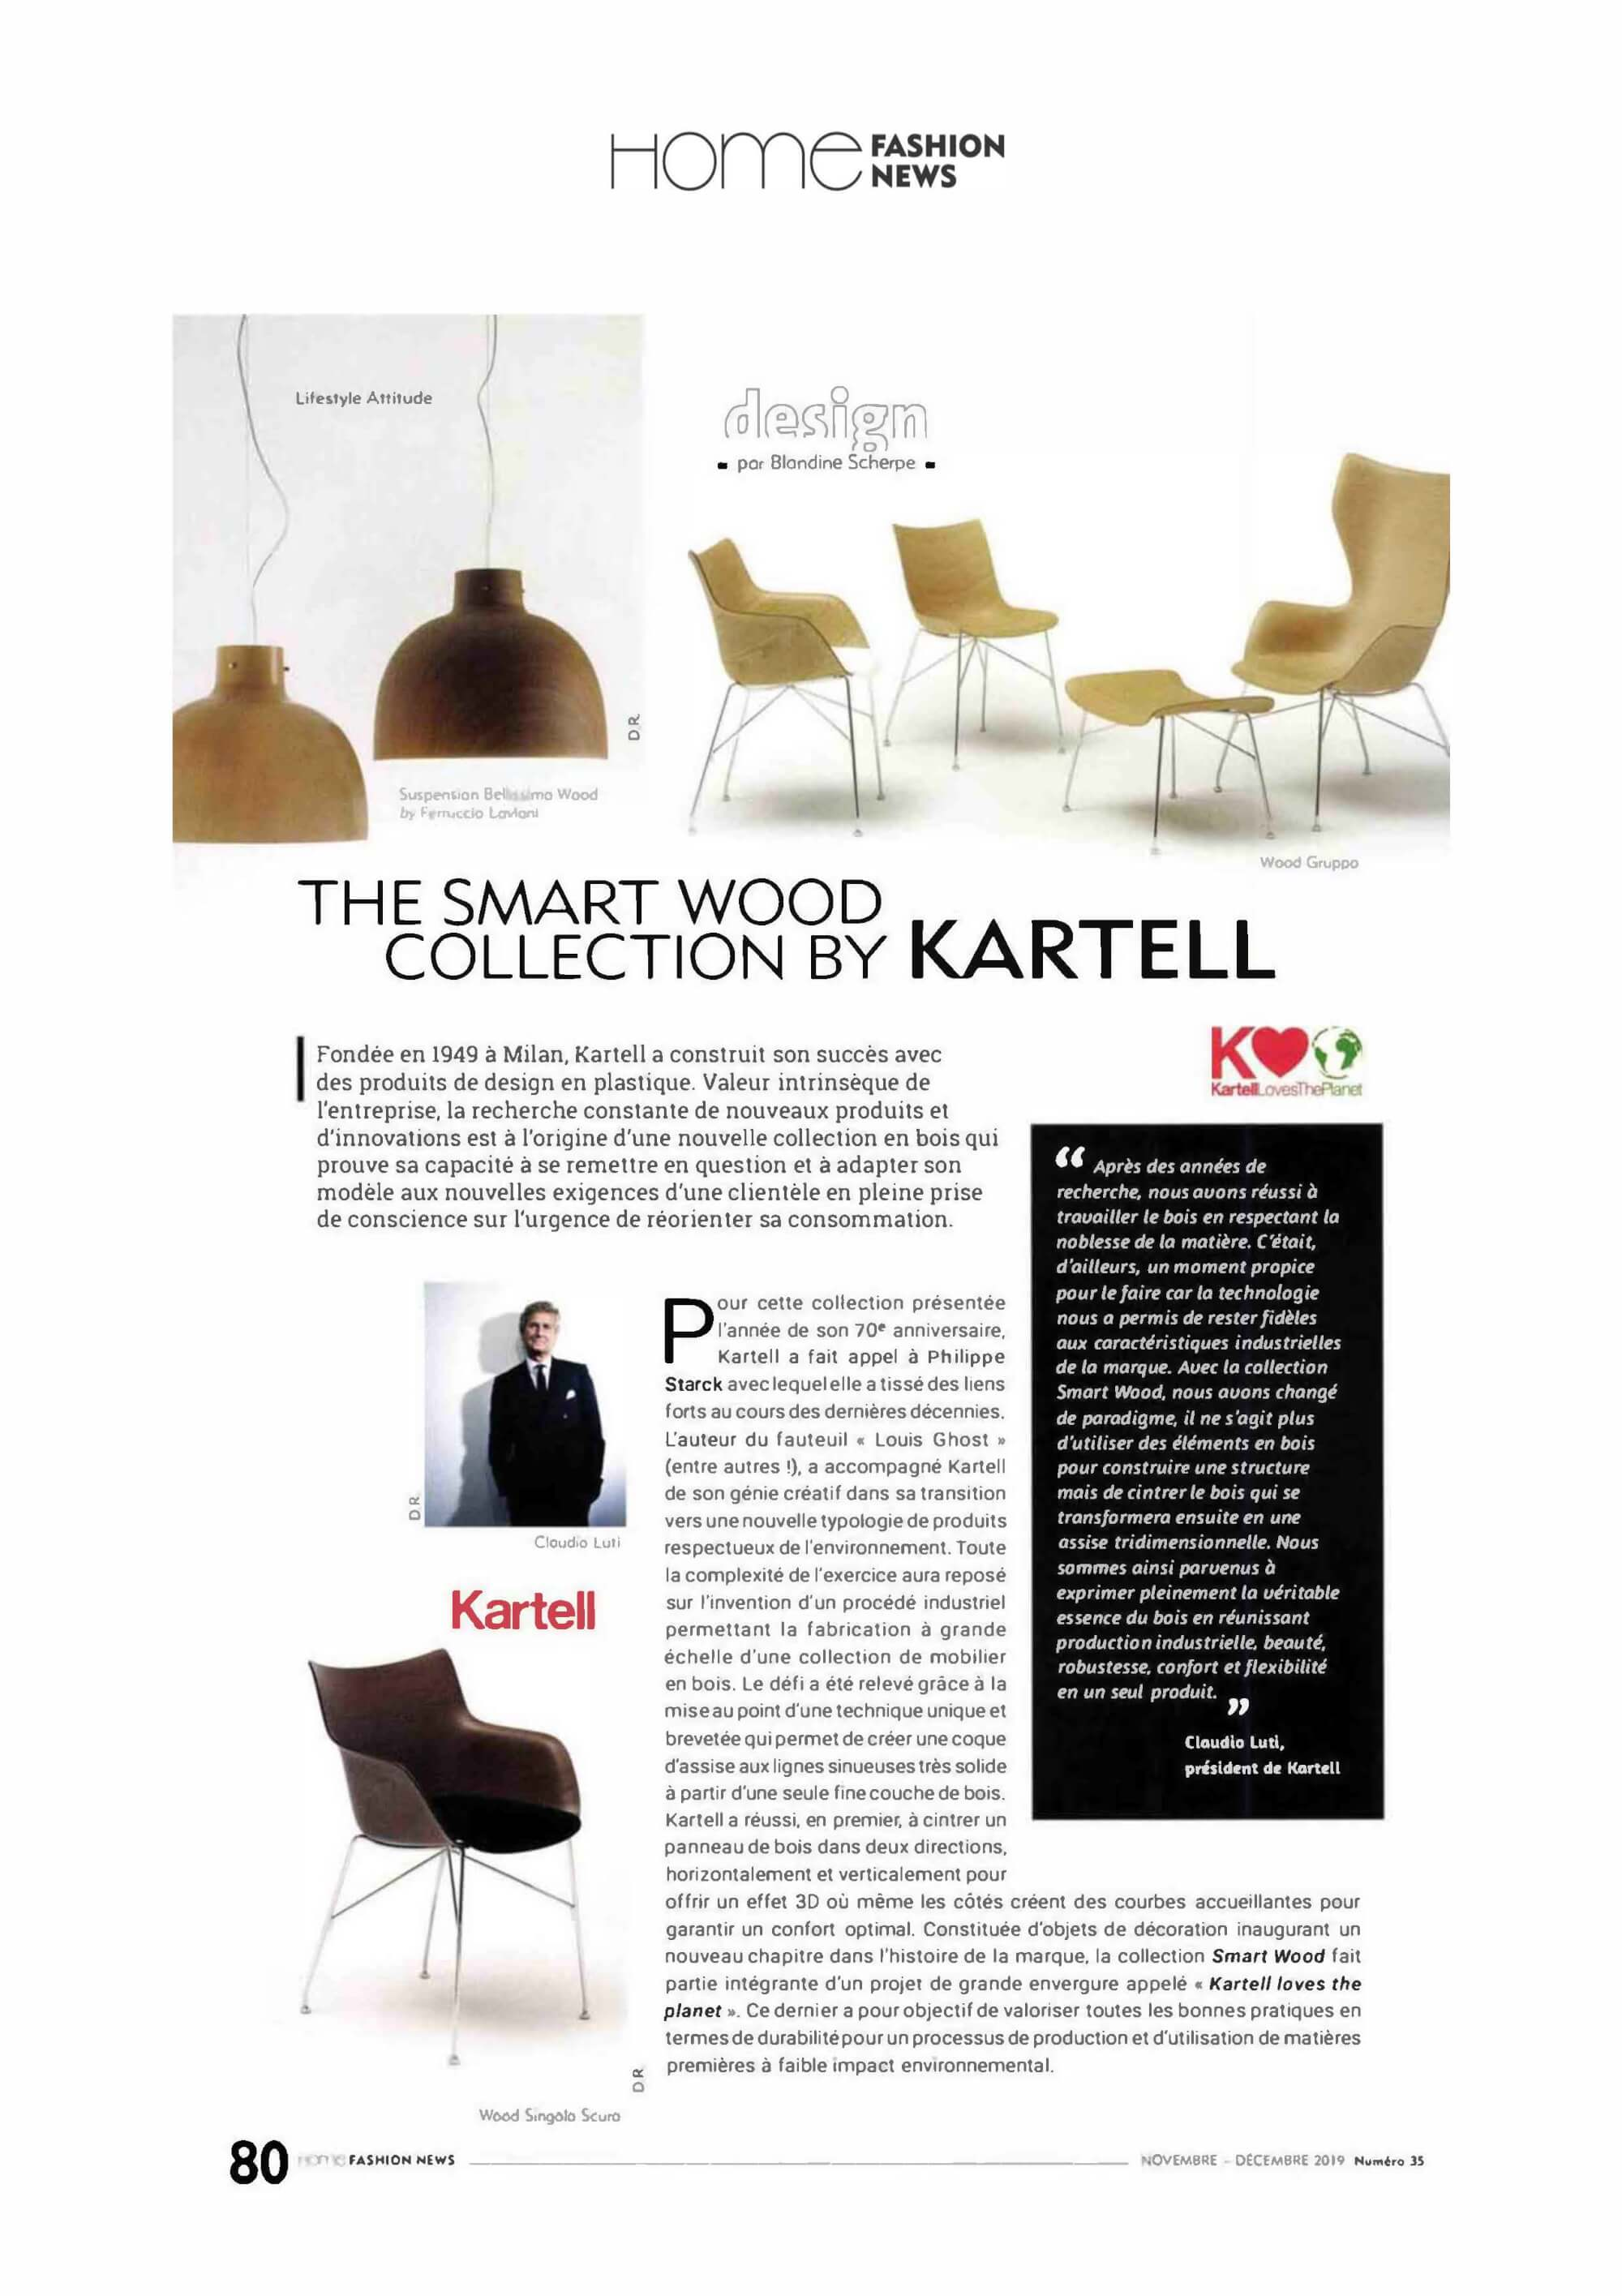 HOME FASHION NEWS - Kartell